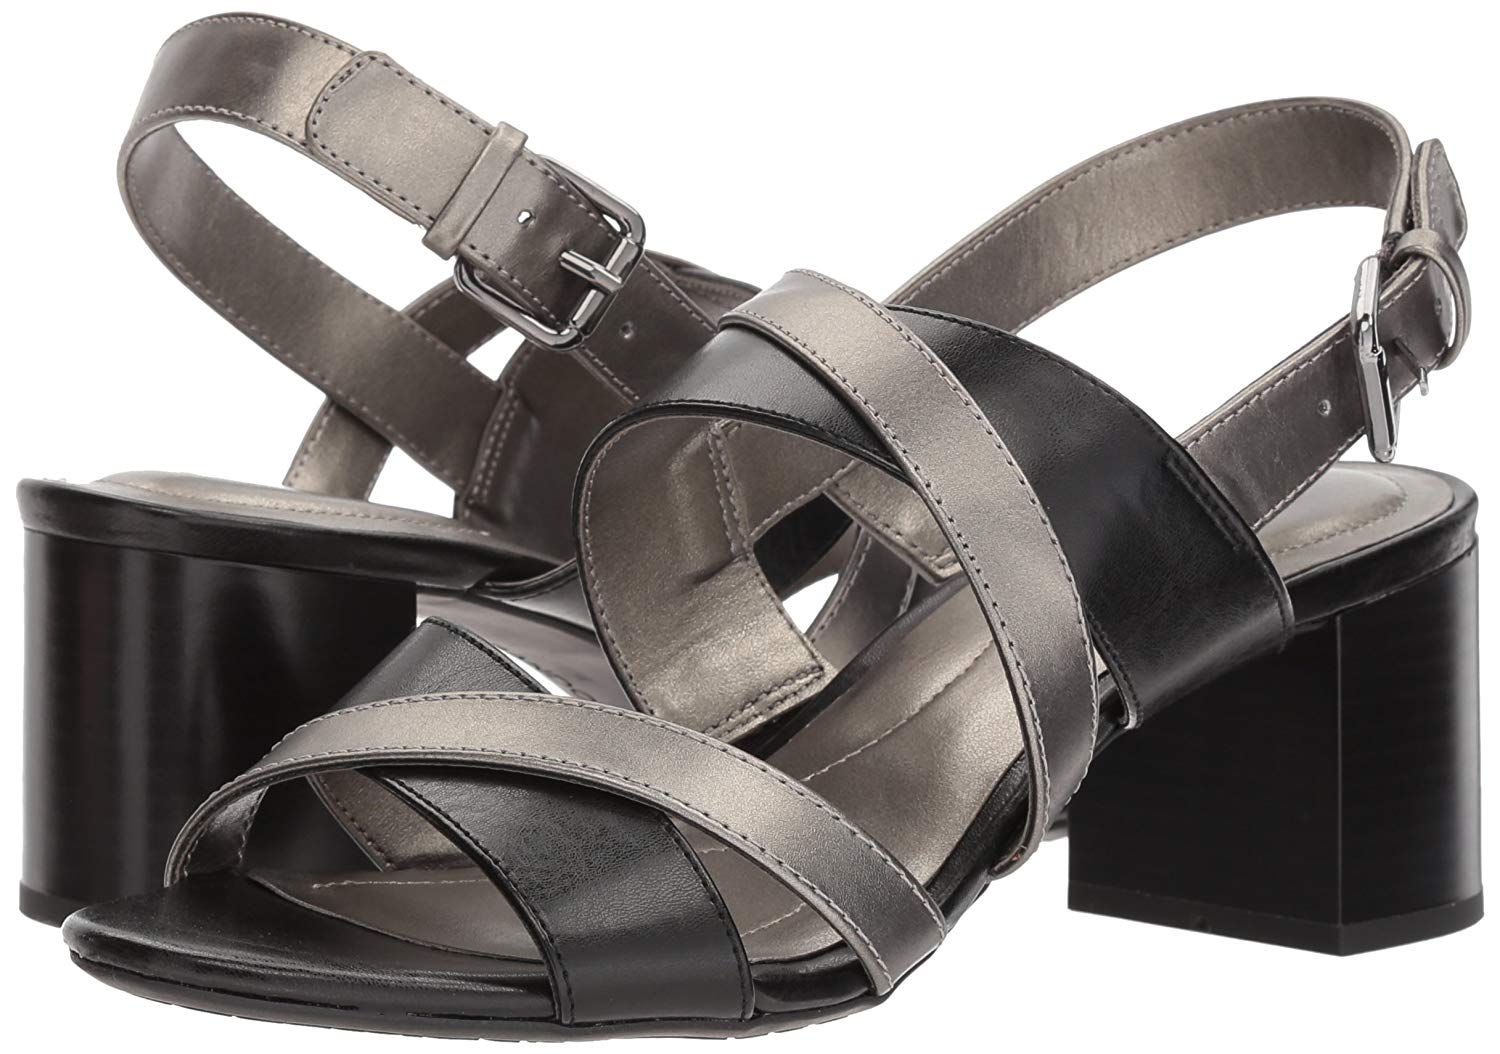 57a072efbd9 Bandolino Womens stepa Open Toe Casual Ankle Strap Sandals